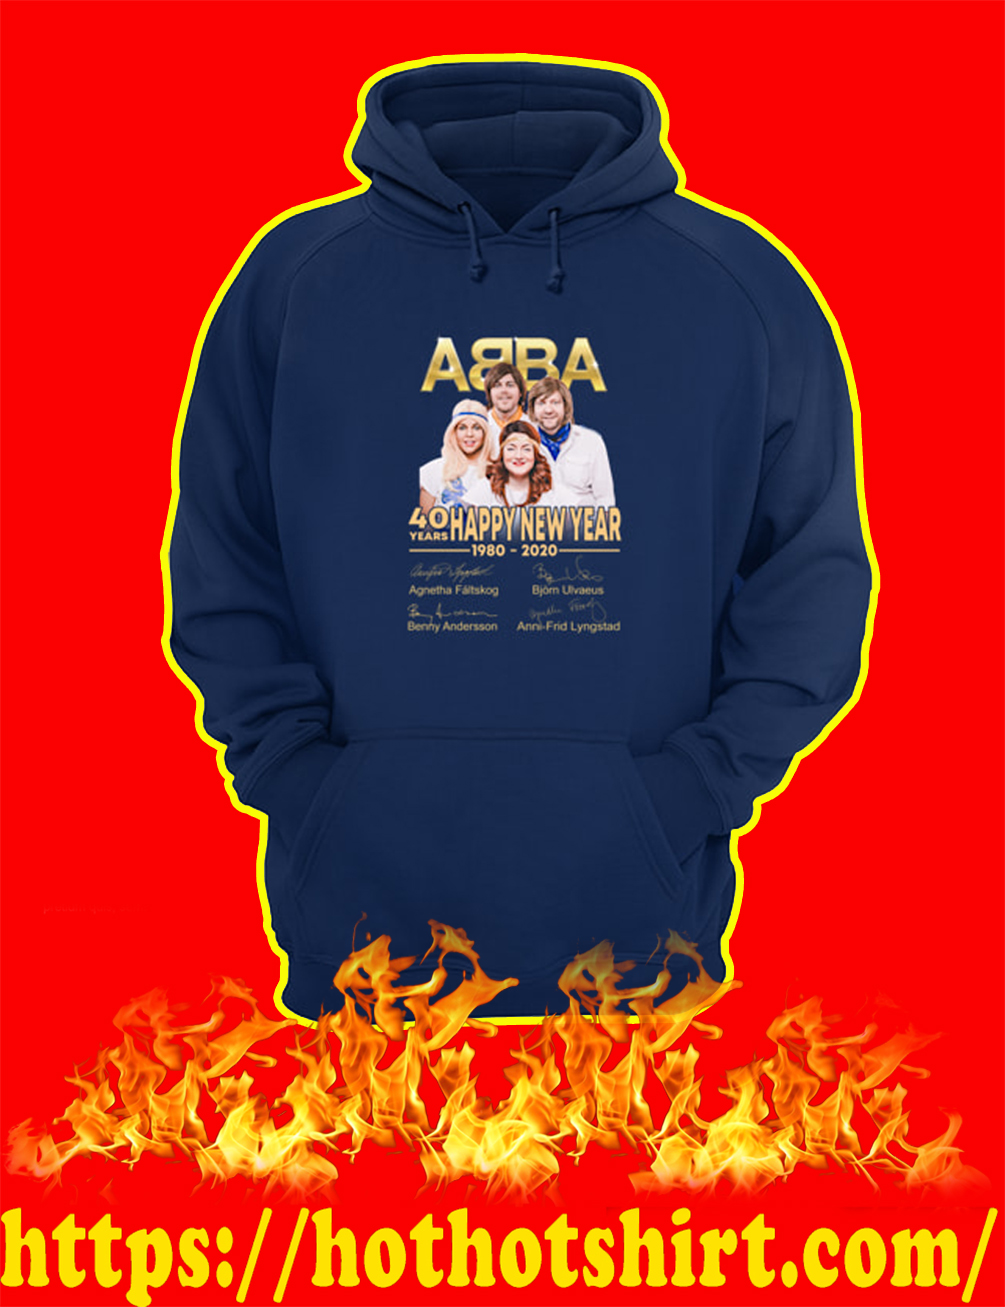 ABBA 40 Years Happy New Year 1980 2020 hoodie